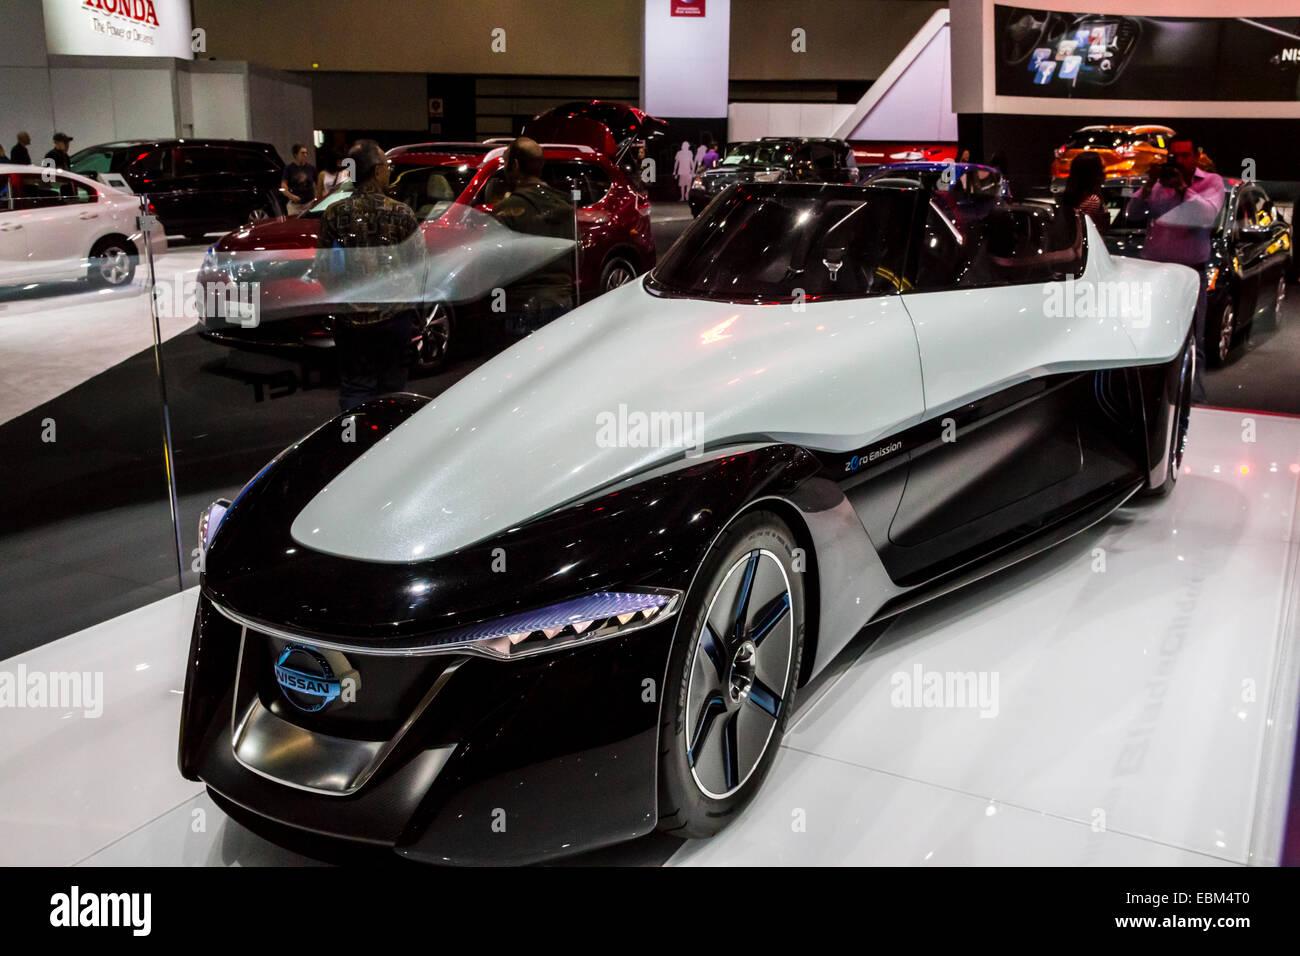 The Nissan Blade Glider all electric concept car at the 2014 Los Angeles Auto Show - Stock Image